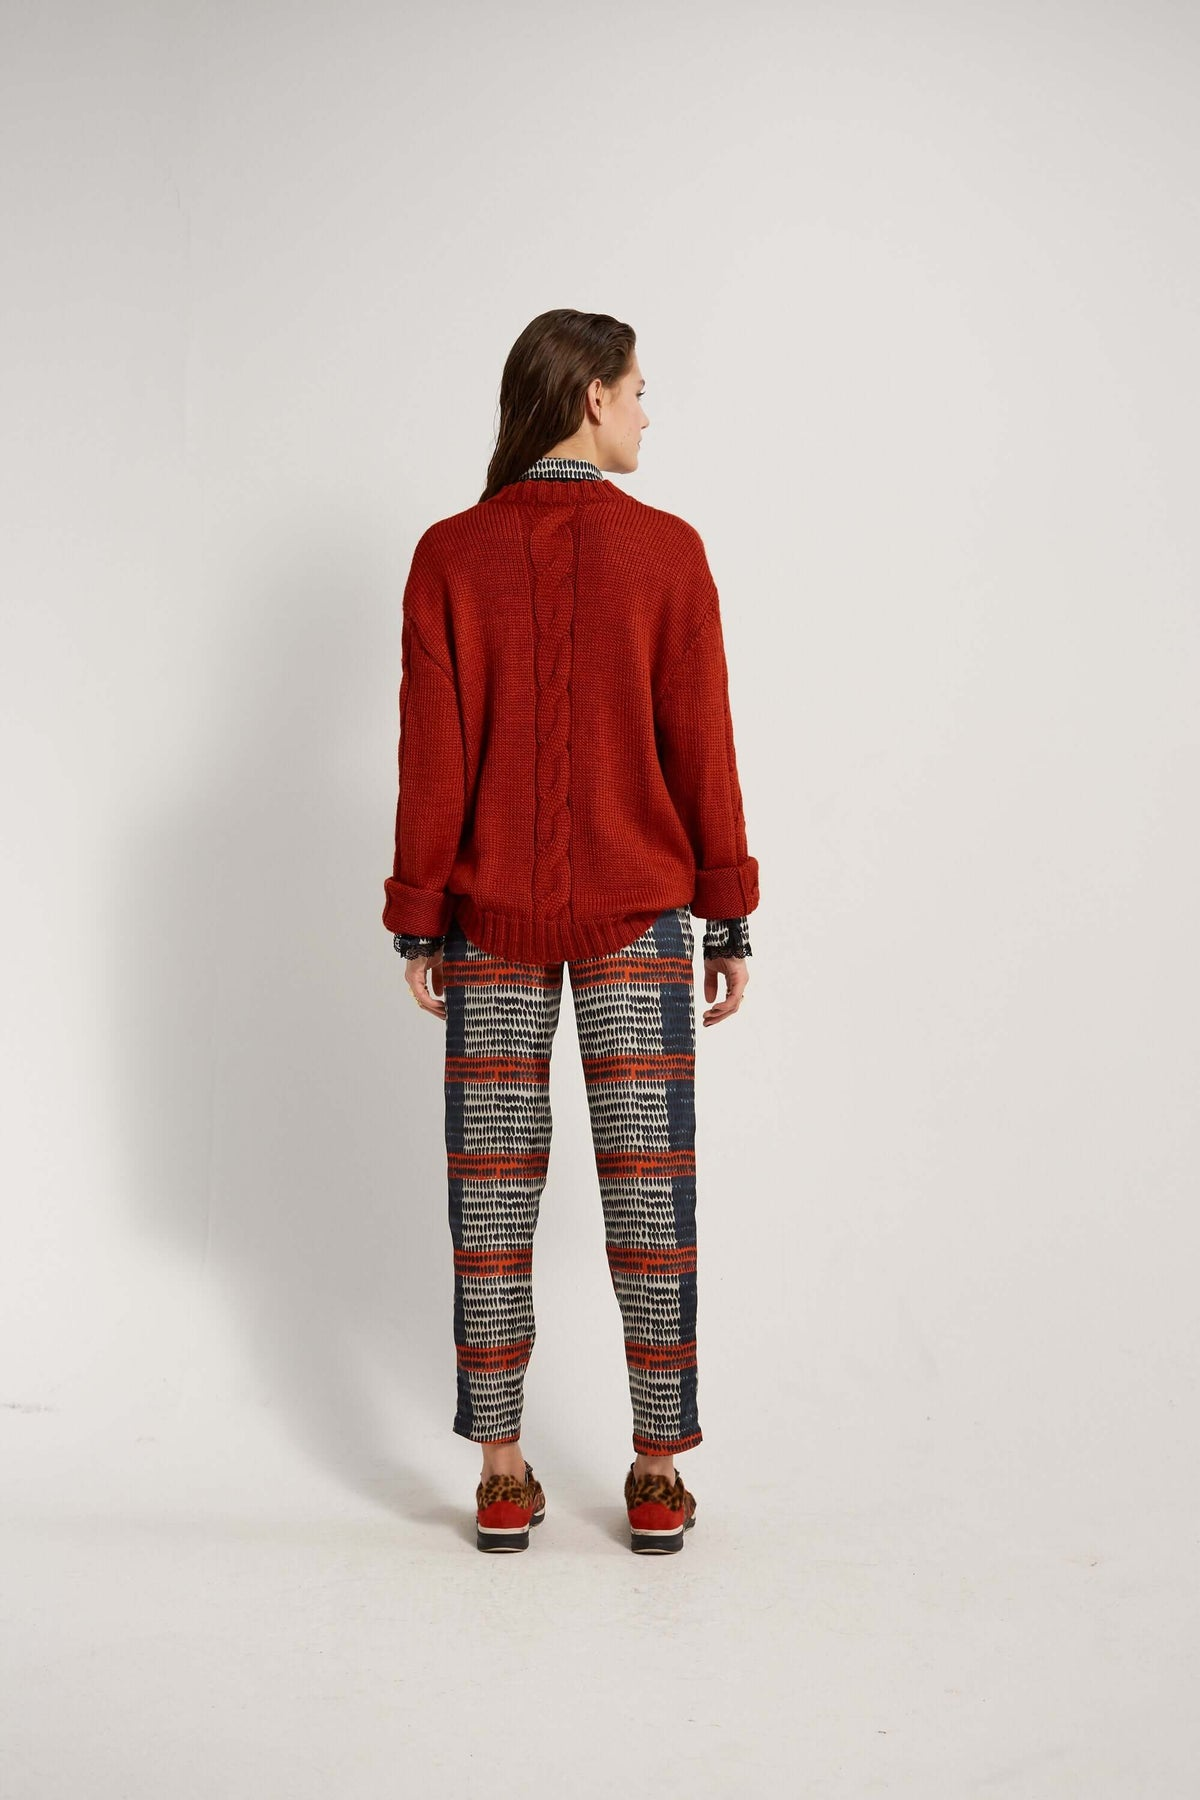 Ellis sweater, Dori shirt & Melchior pants